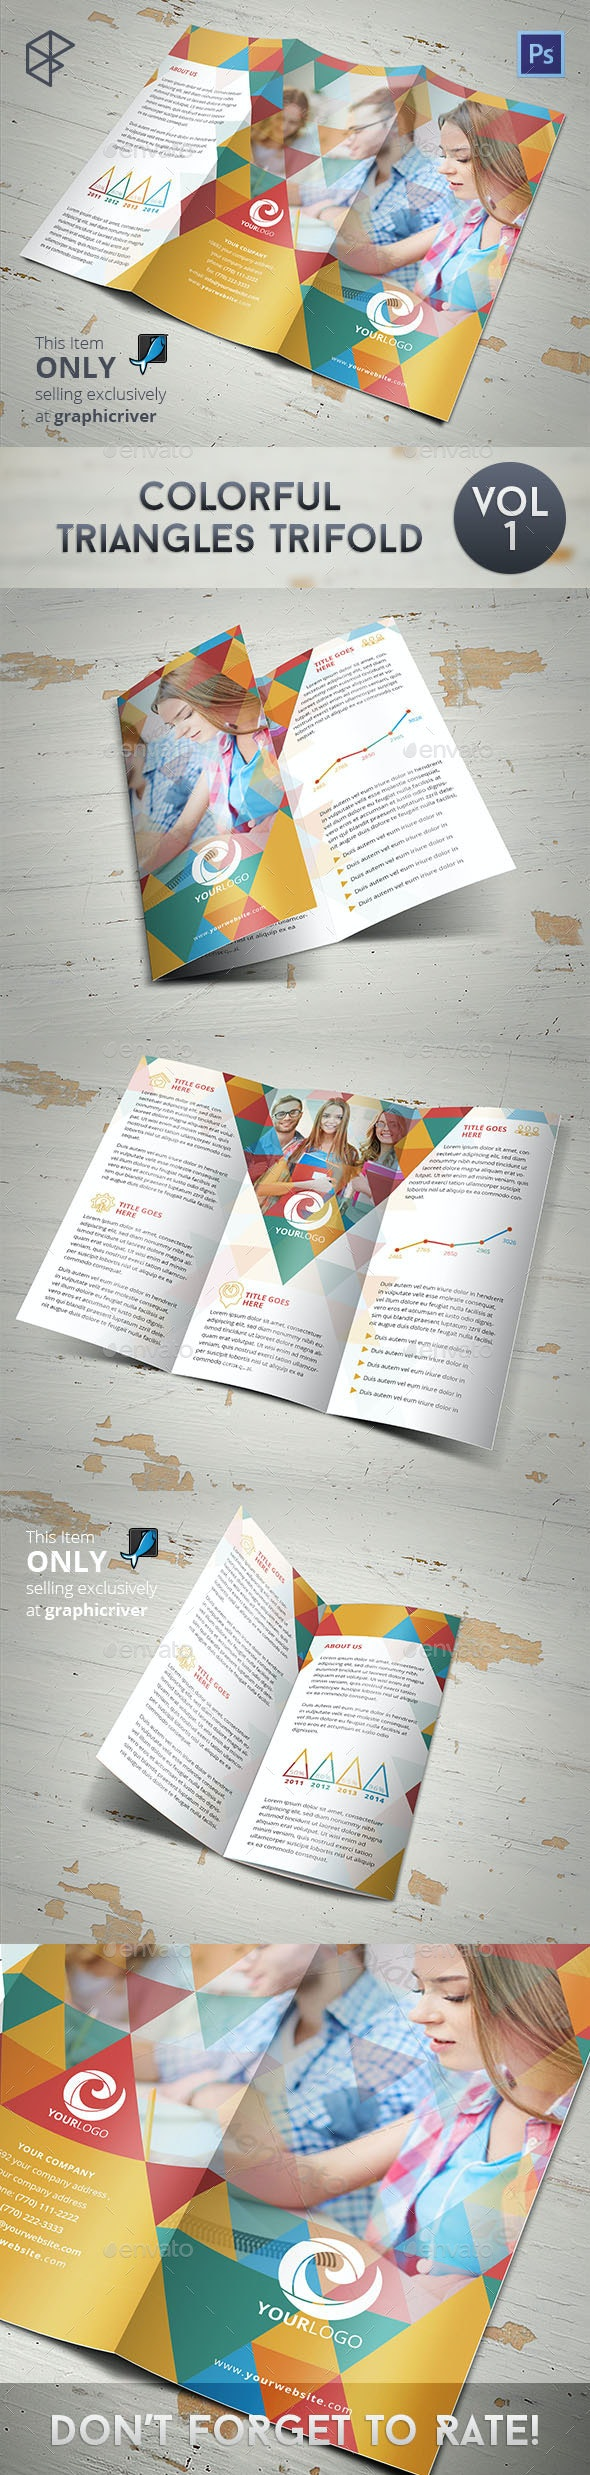 Colorful Triangles Trifold - Corporate Brochures